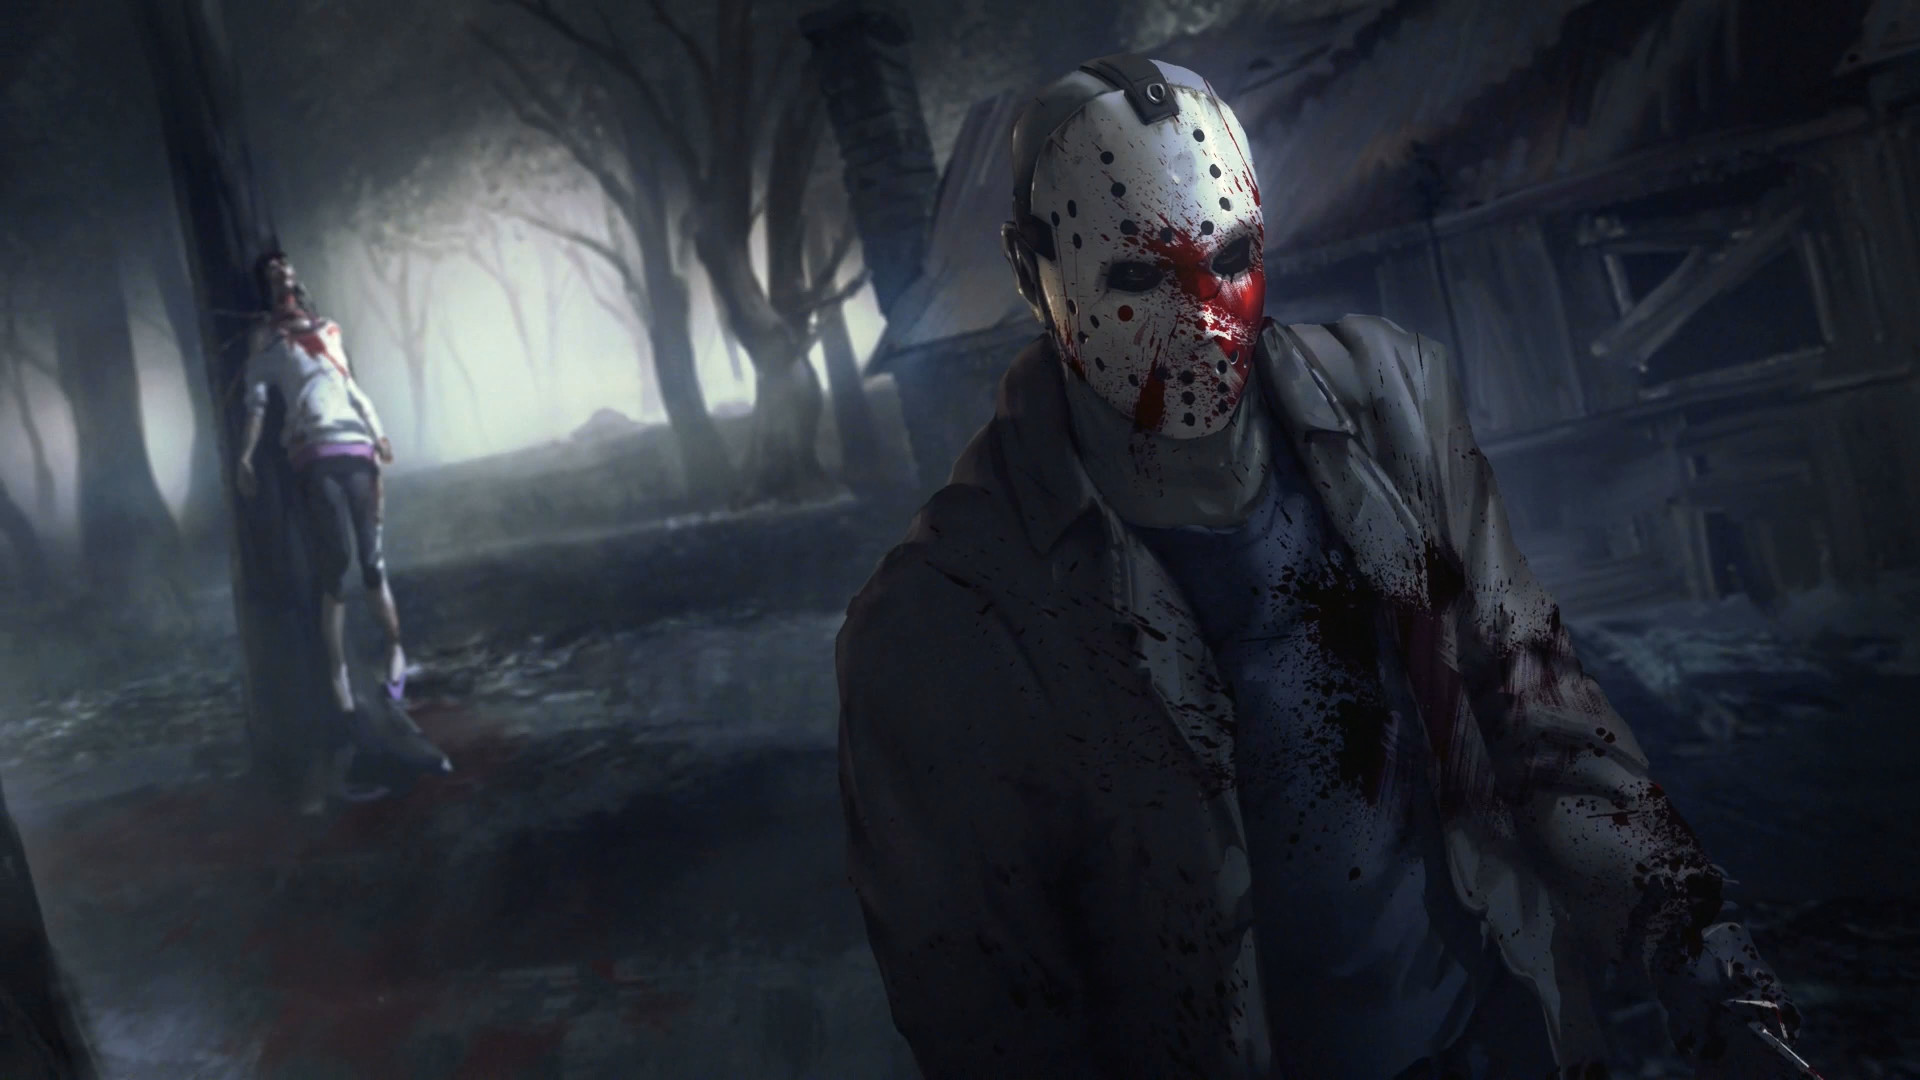 1920x1080 Video Game - Friday the 13th: The Game Wallpaper